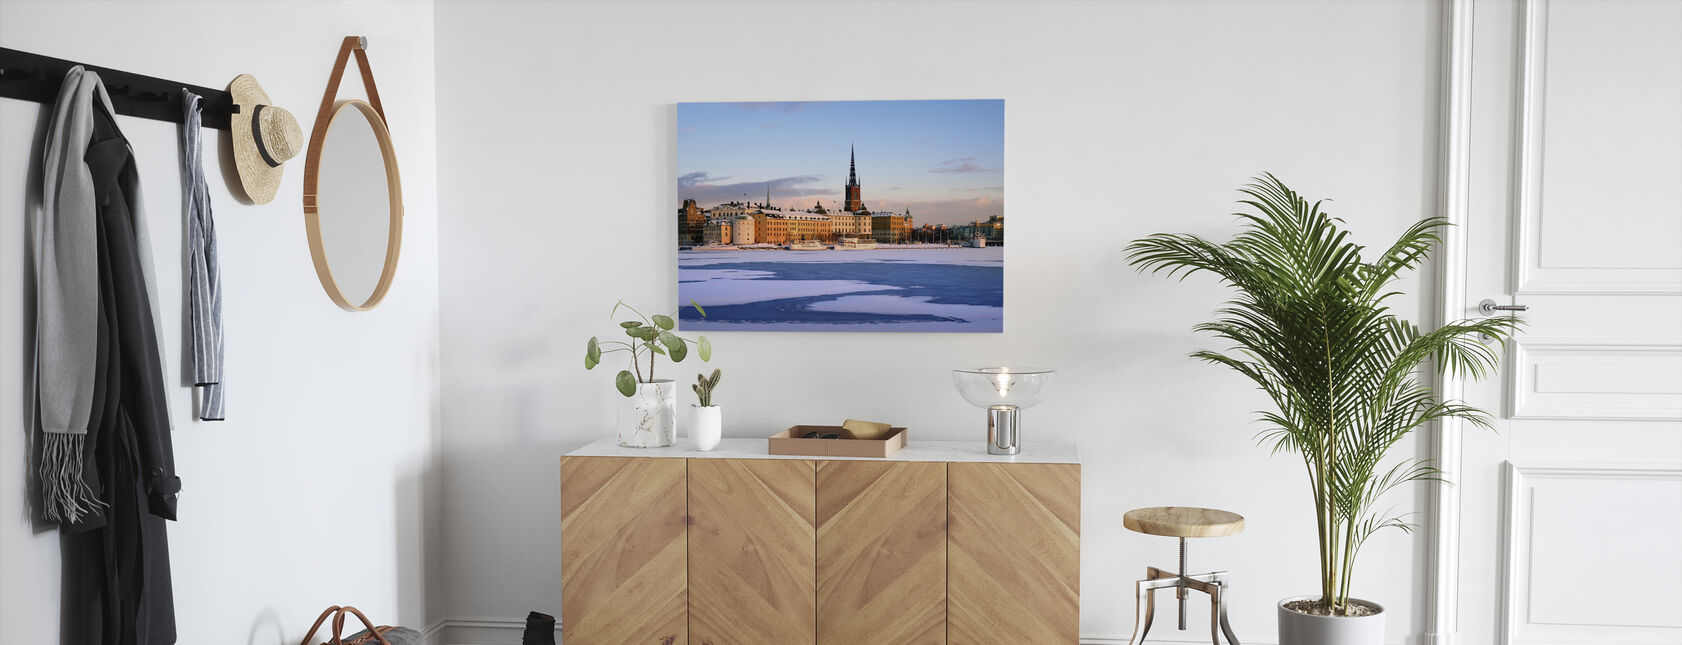 Winter in Stockholm, Sweden - Canvas print - Hallway